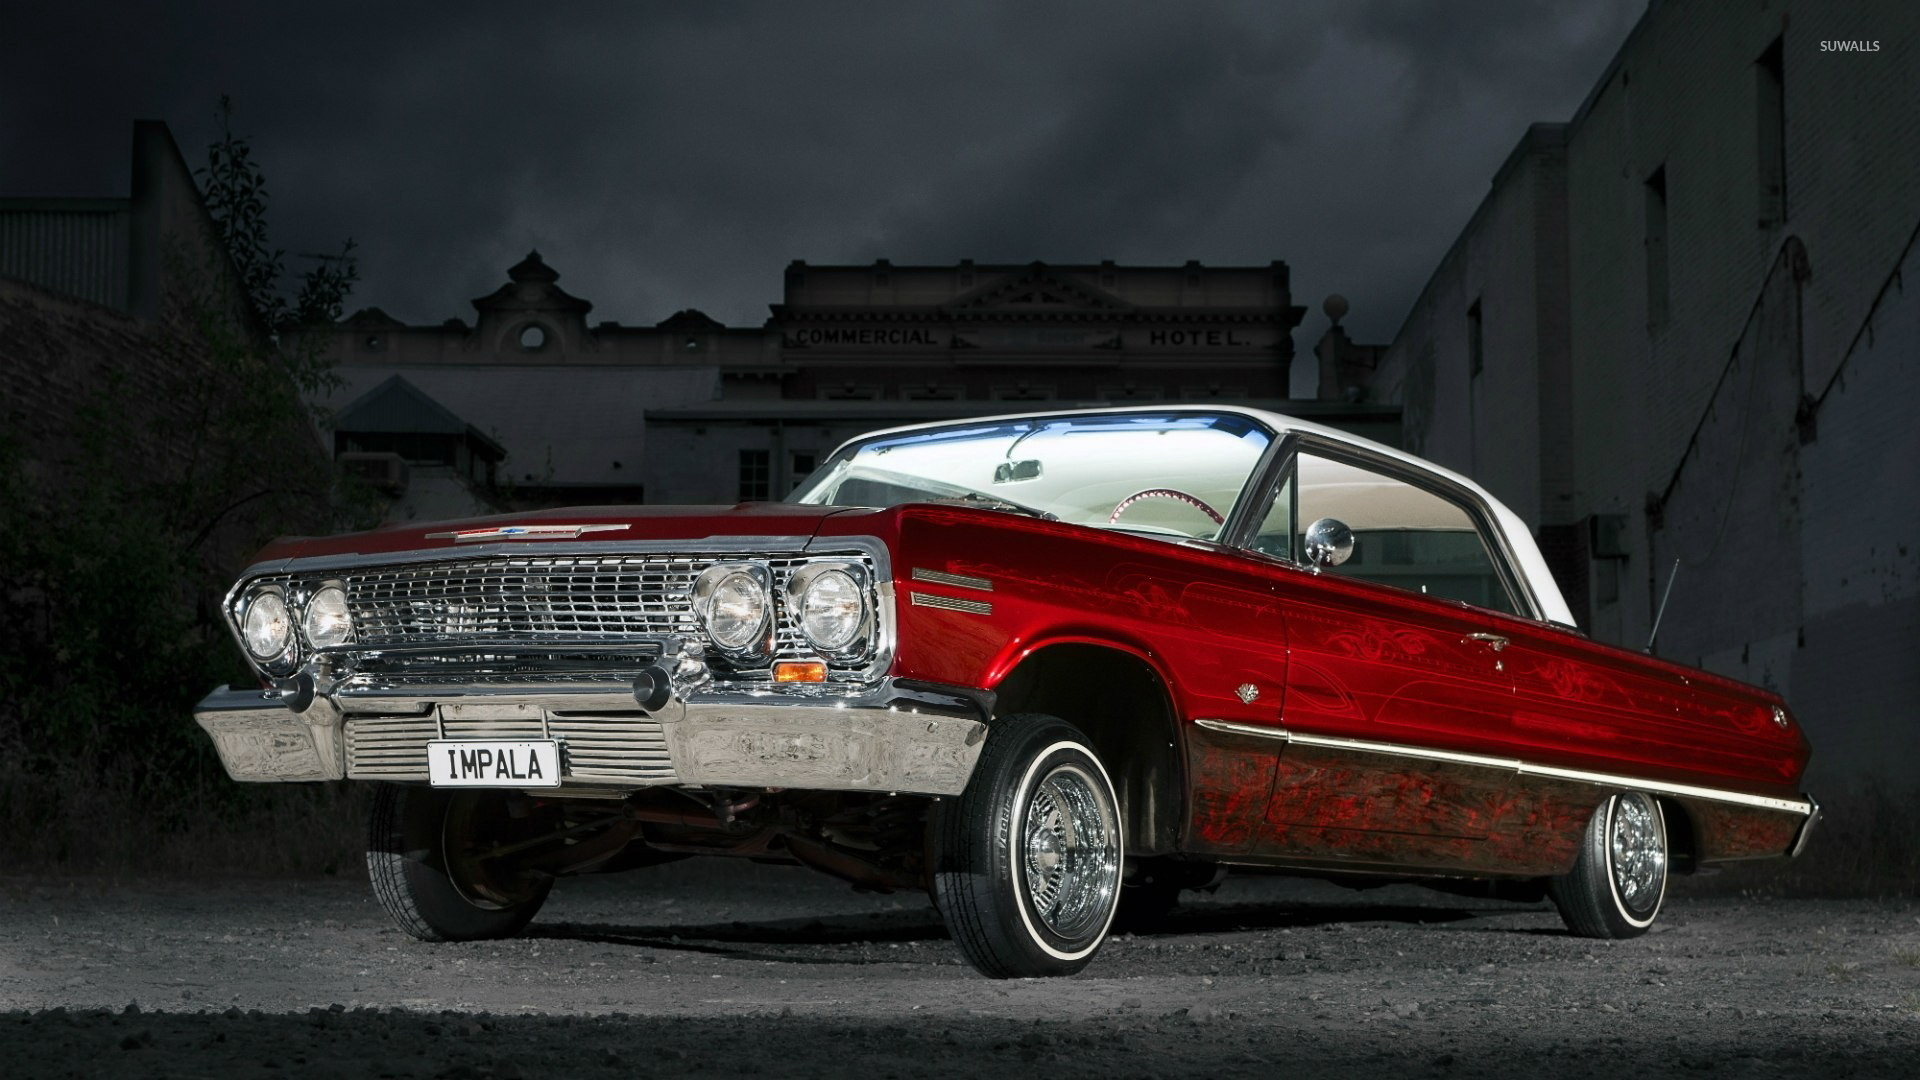 Free Bmw Car Wallpapers Download Chevrolet Impala Wallpaper Car Wallpapers 41392